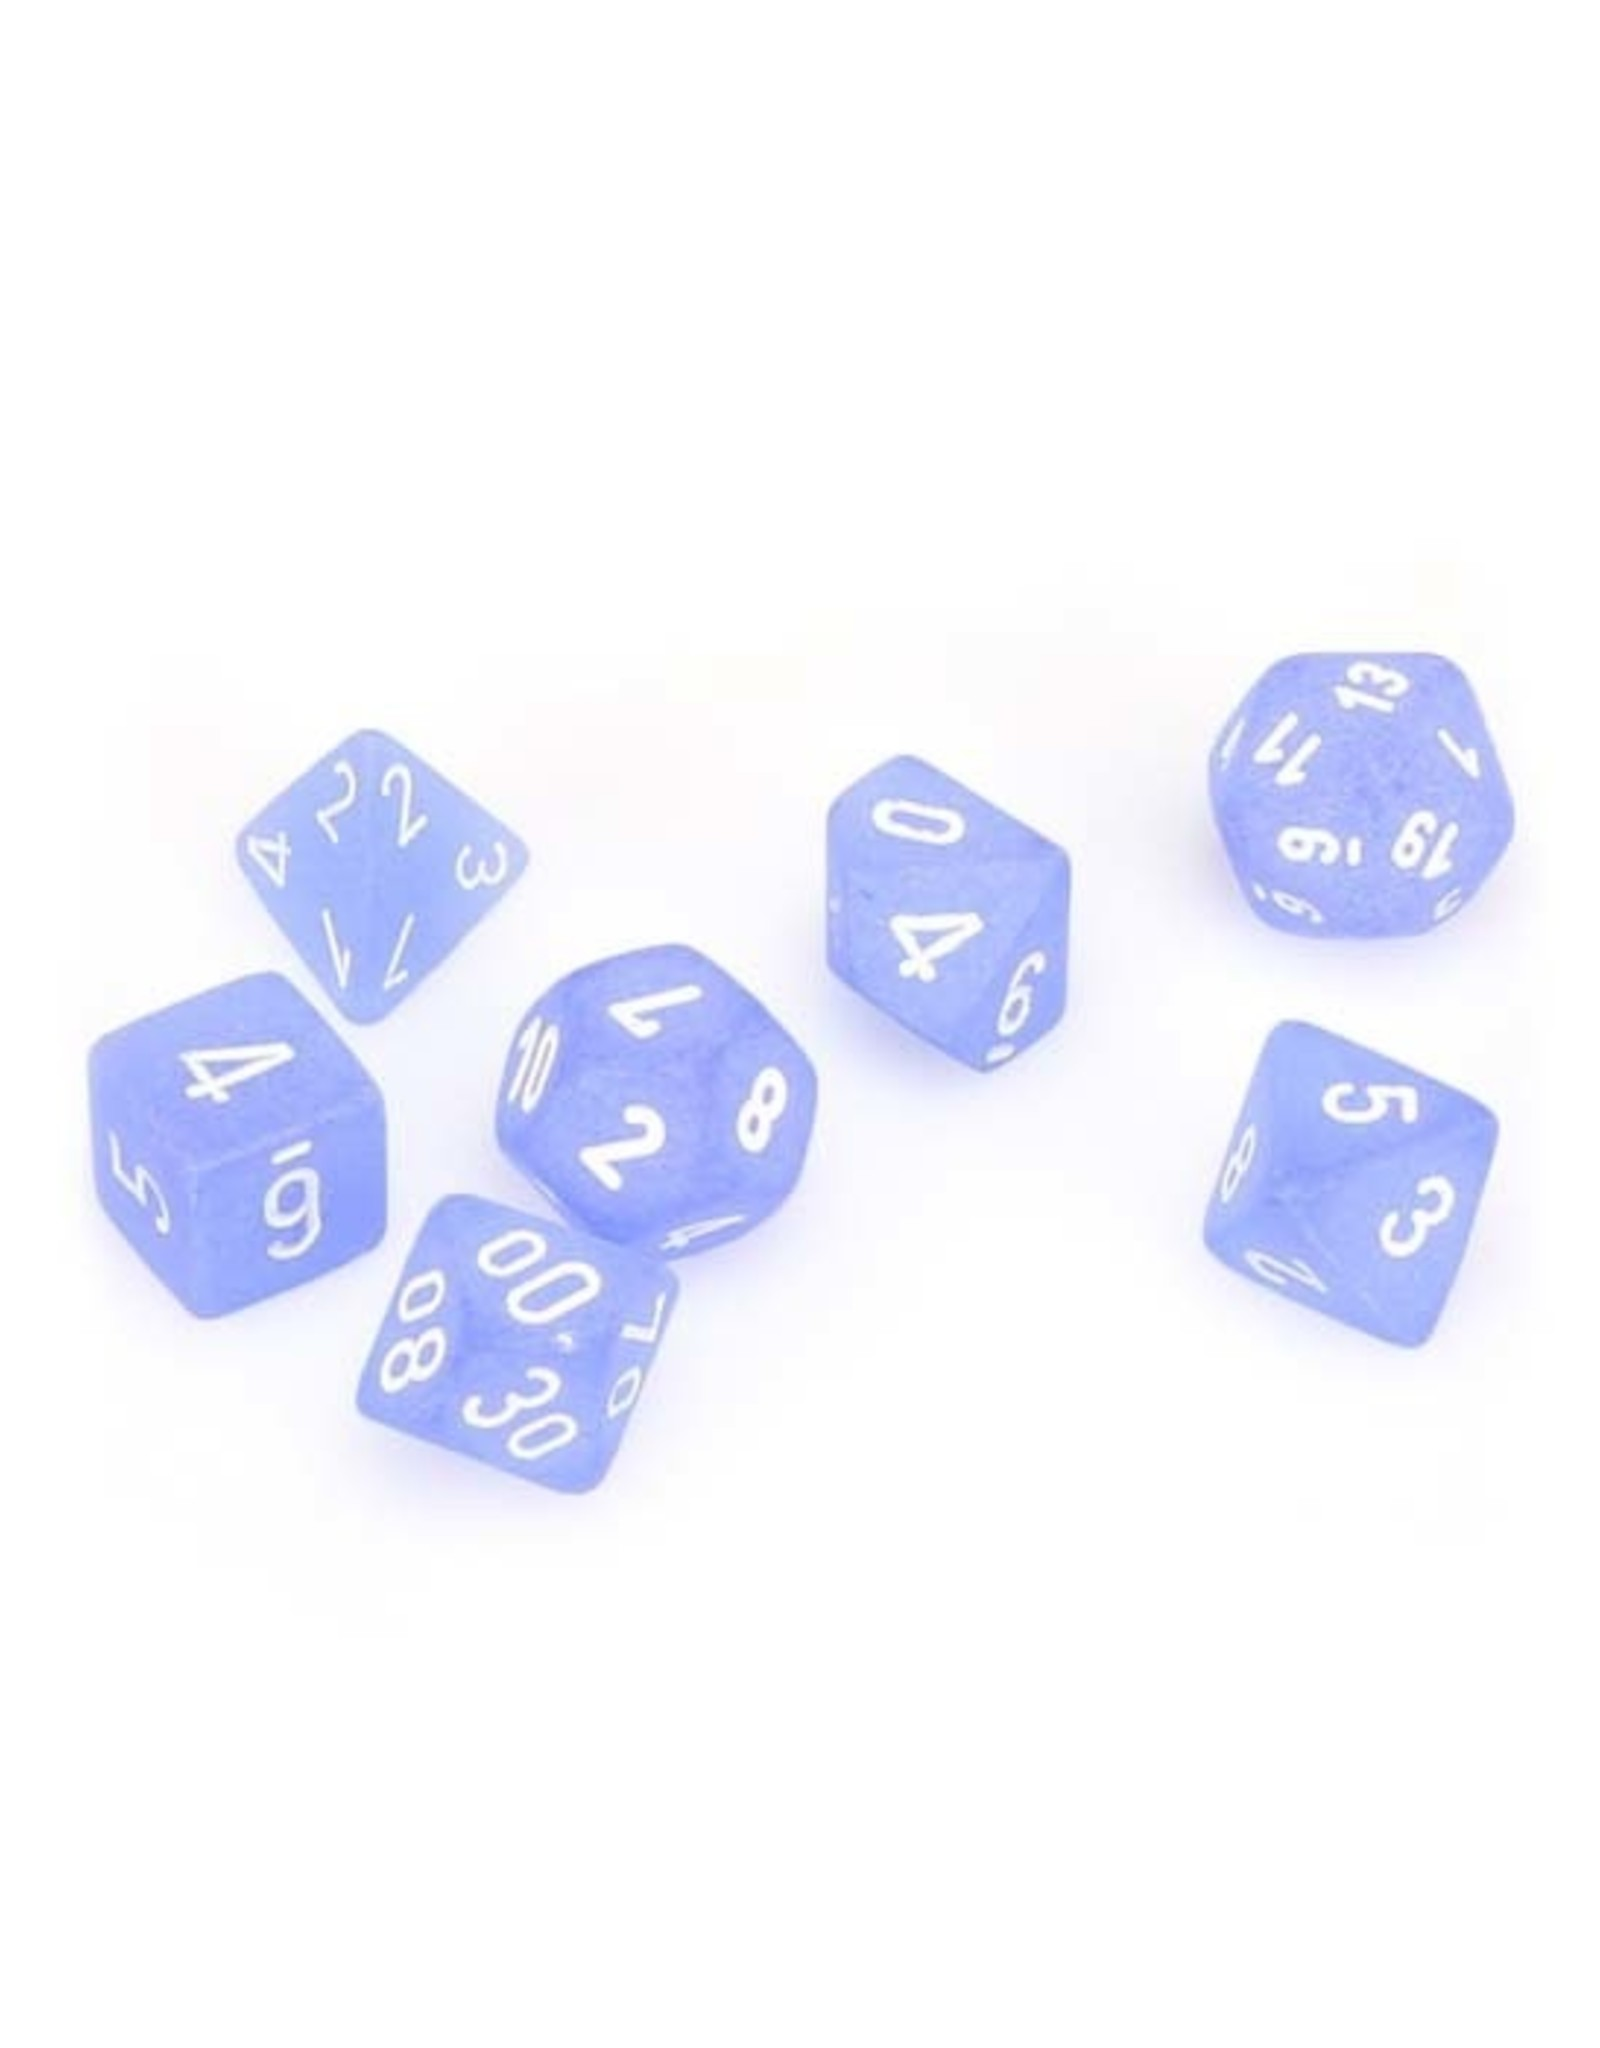 Chessex Chessex: Poly 7 Set - Frosted - Blue w/ White